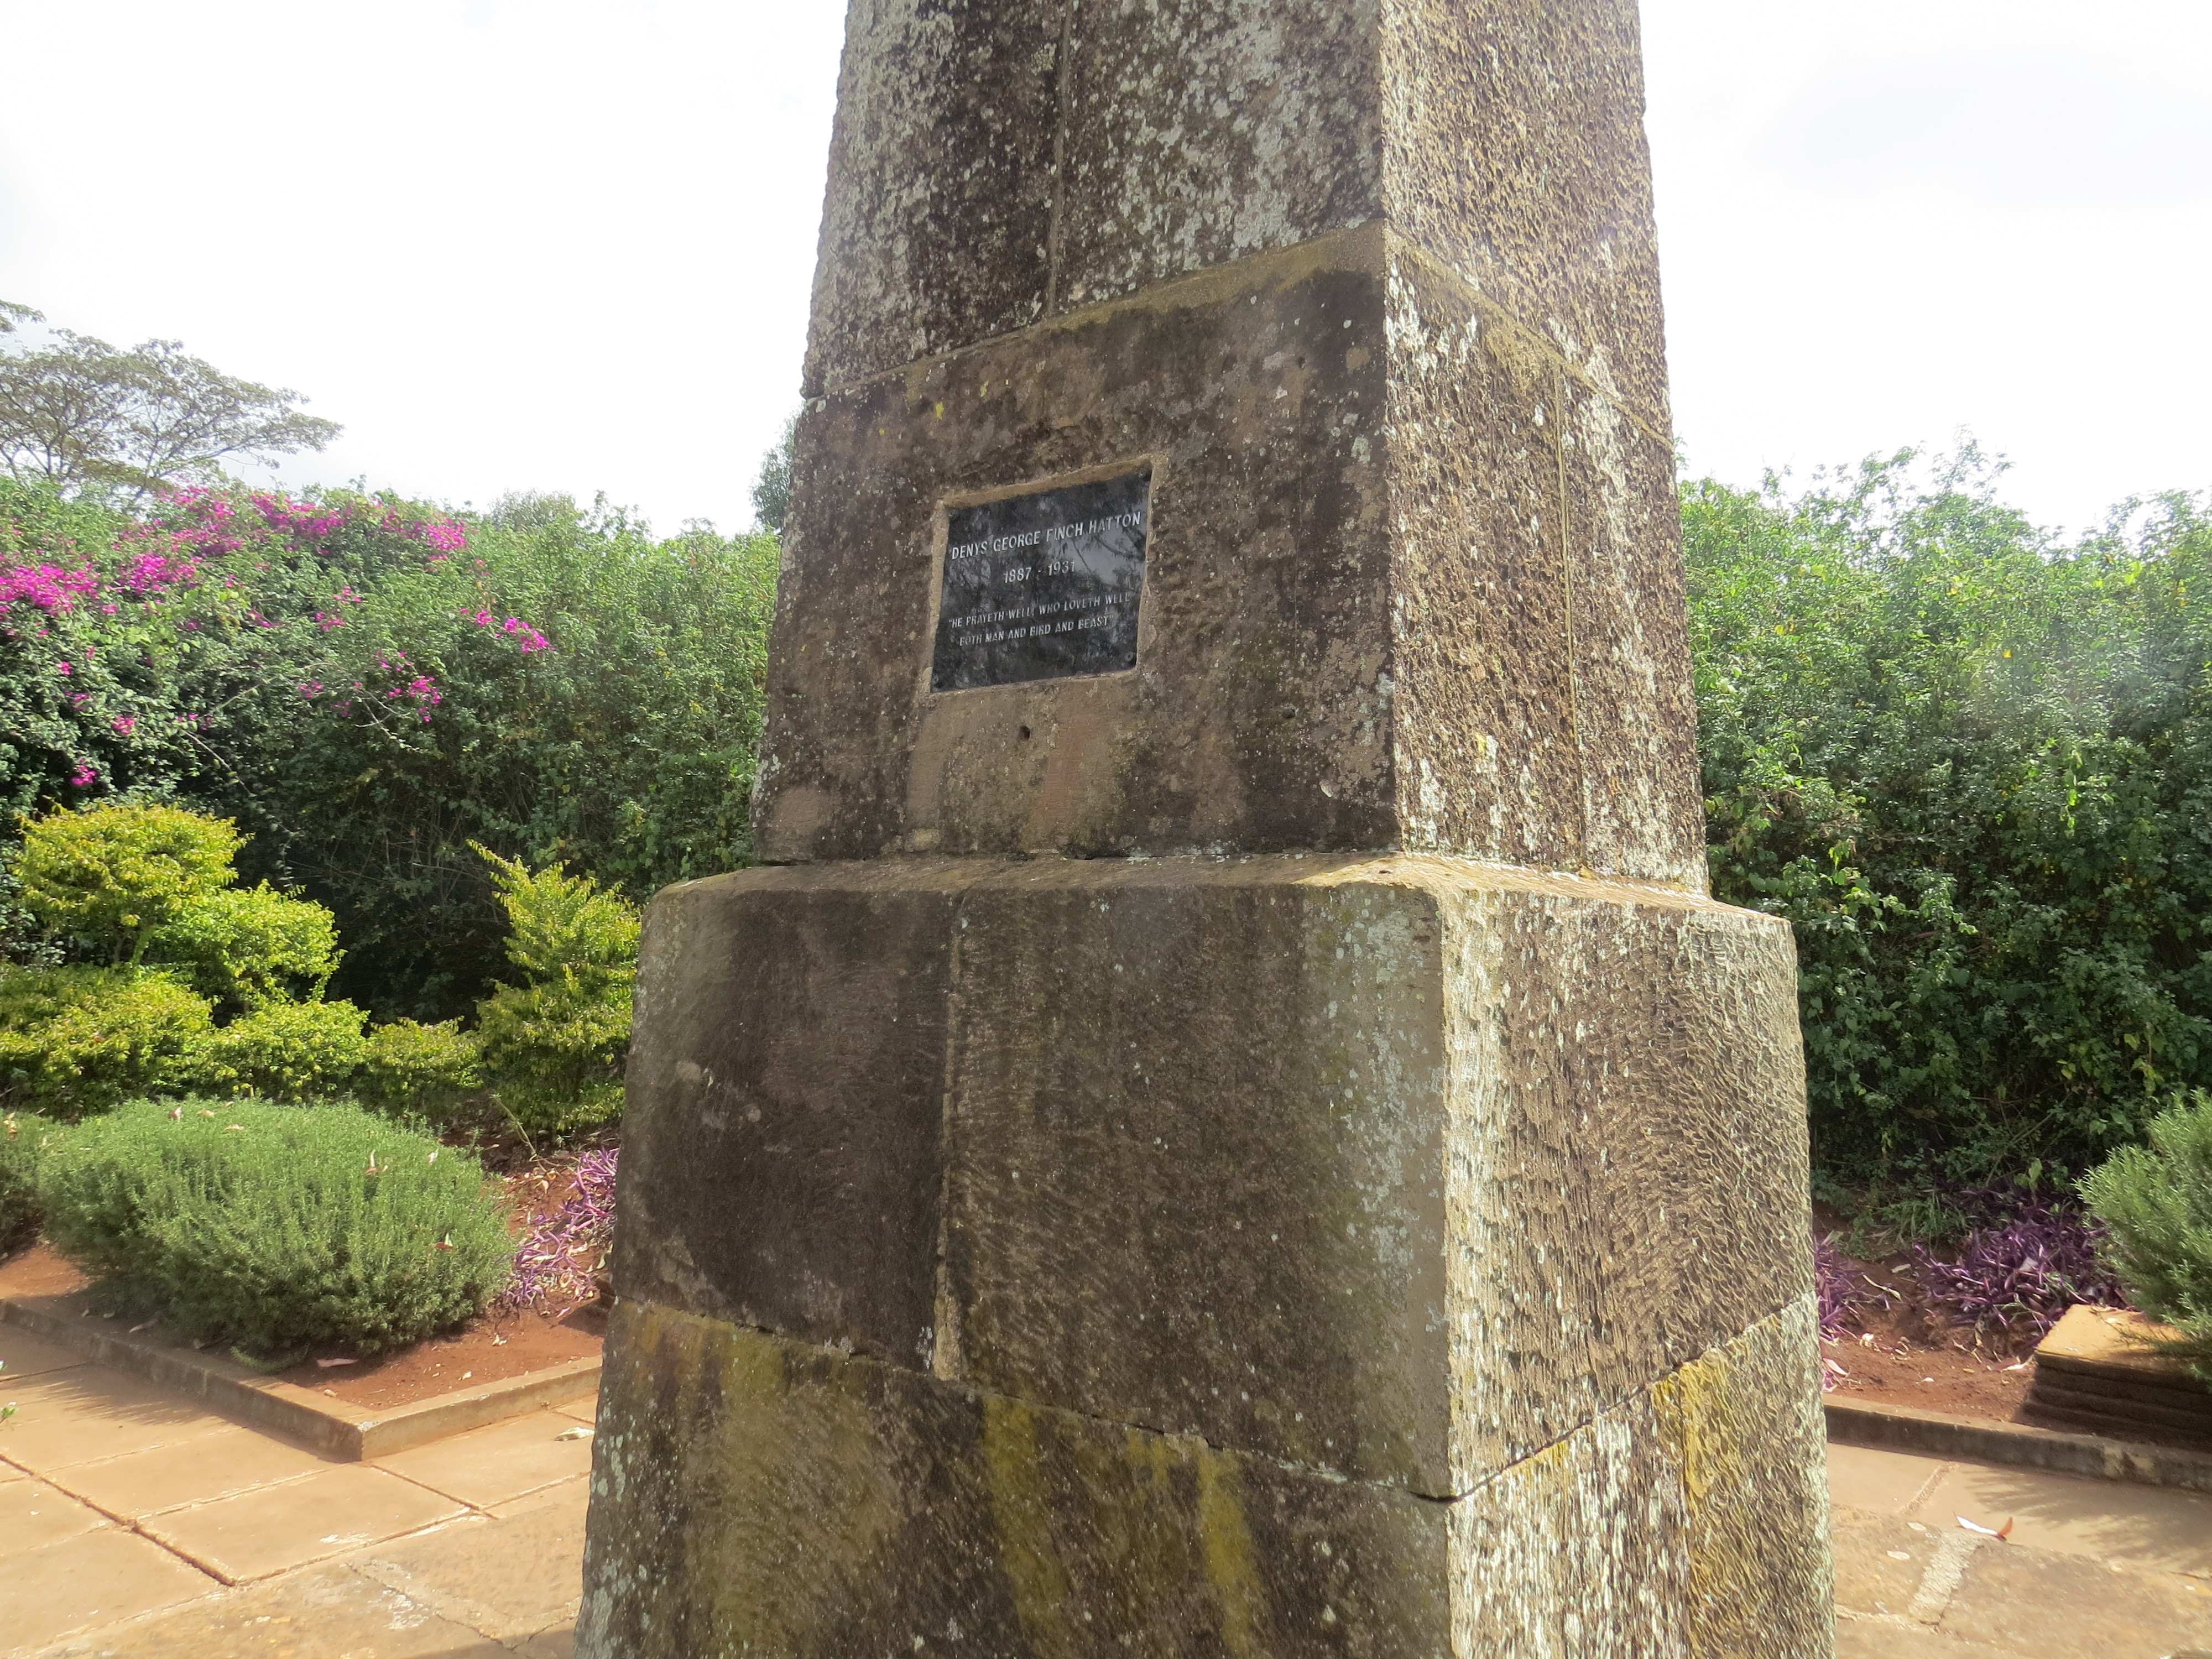 Part of the obelix with the plaque on Ngong Hills for Denys Finch Hatton reads 'He prayeth well, who loveth well both man and bird and beast'. . Copyright Rupi Mangat